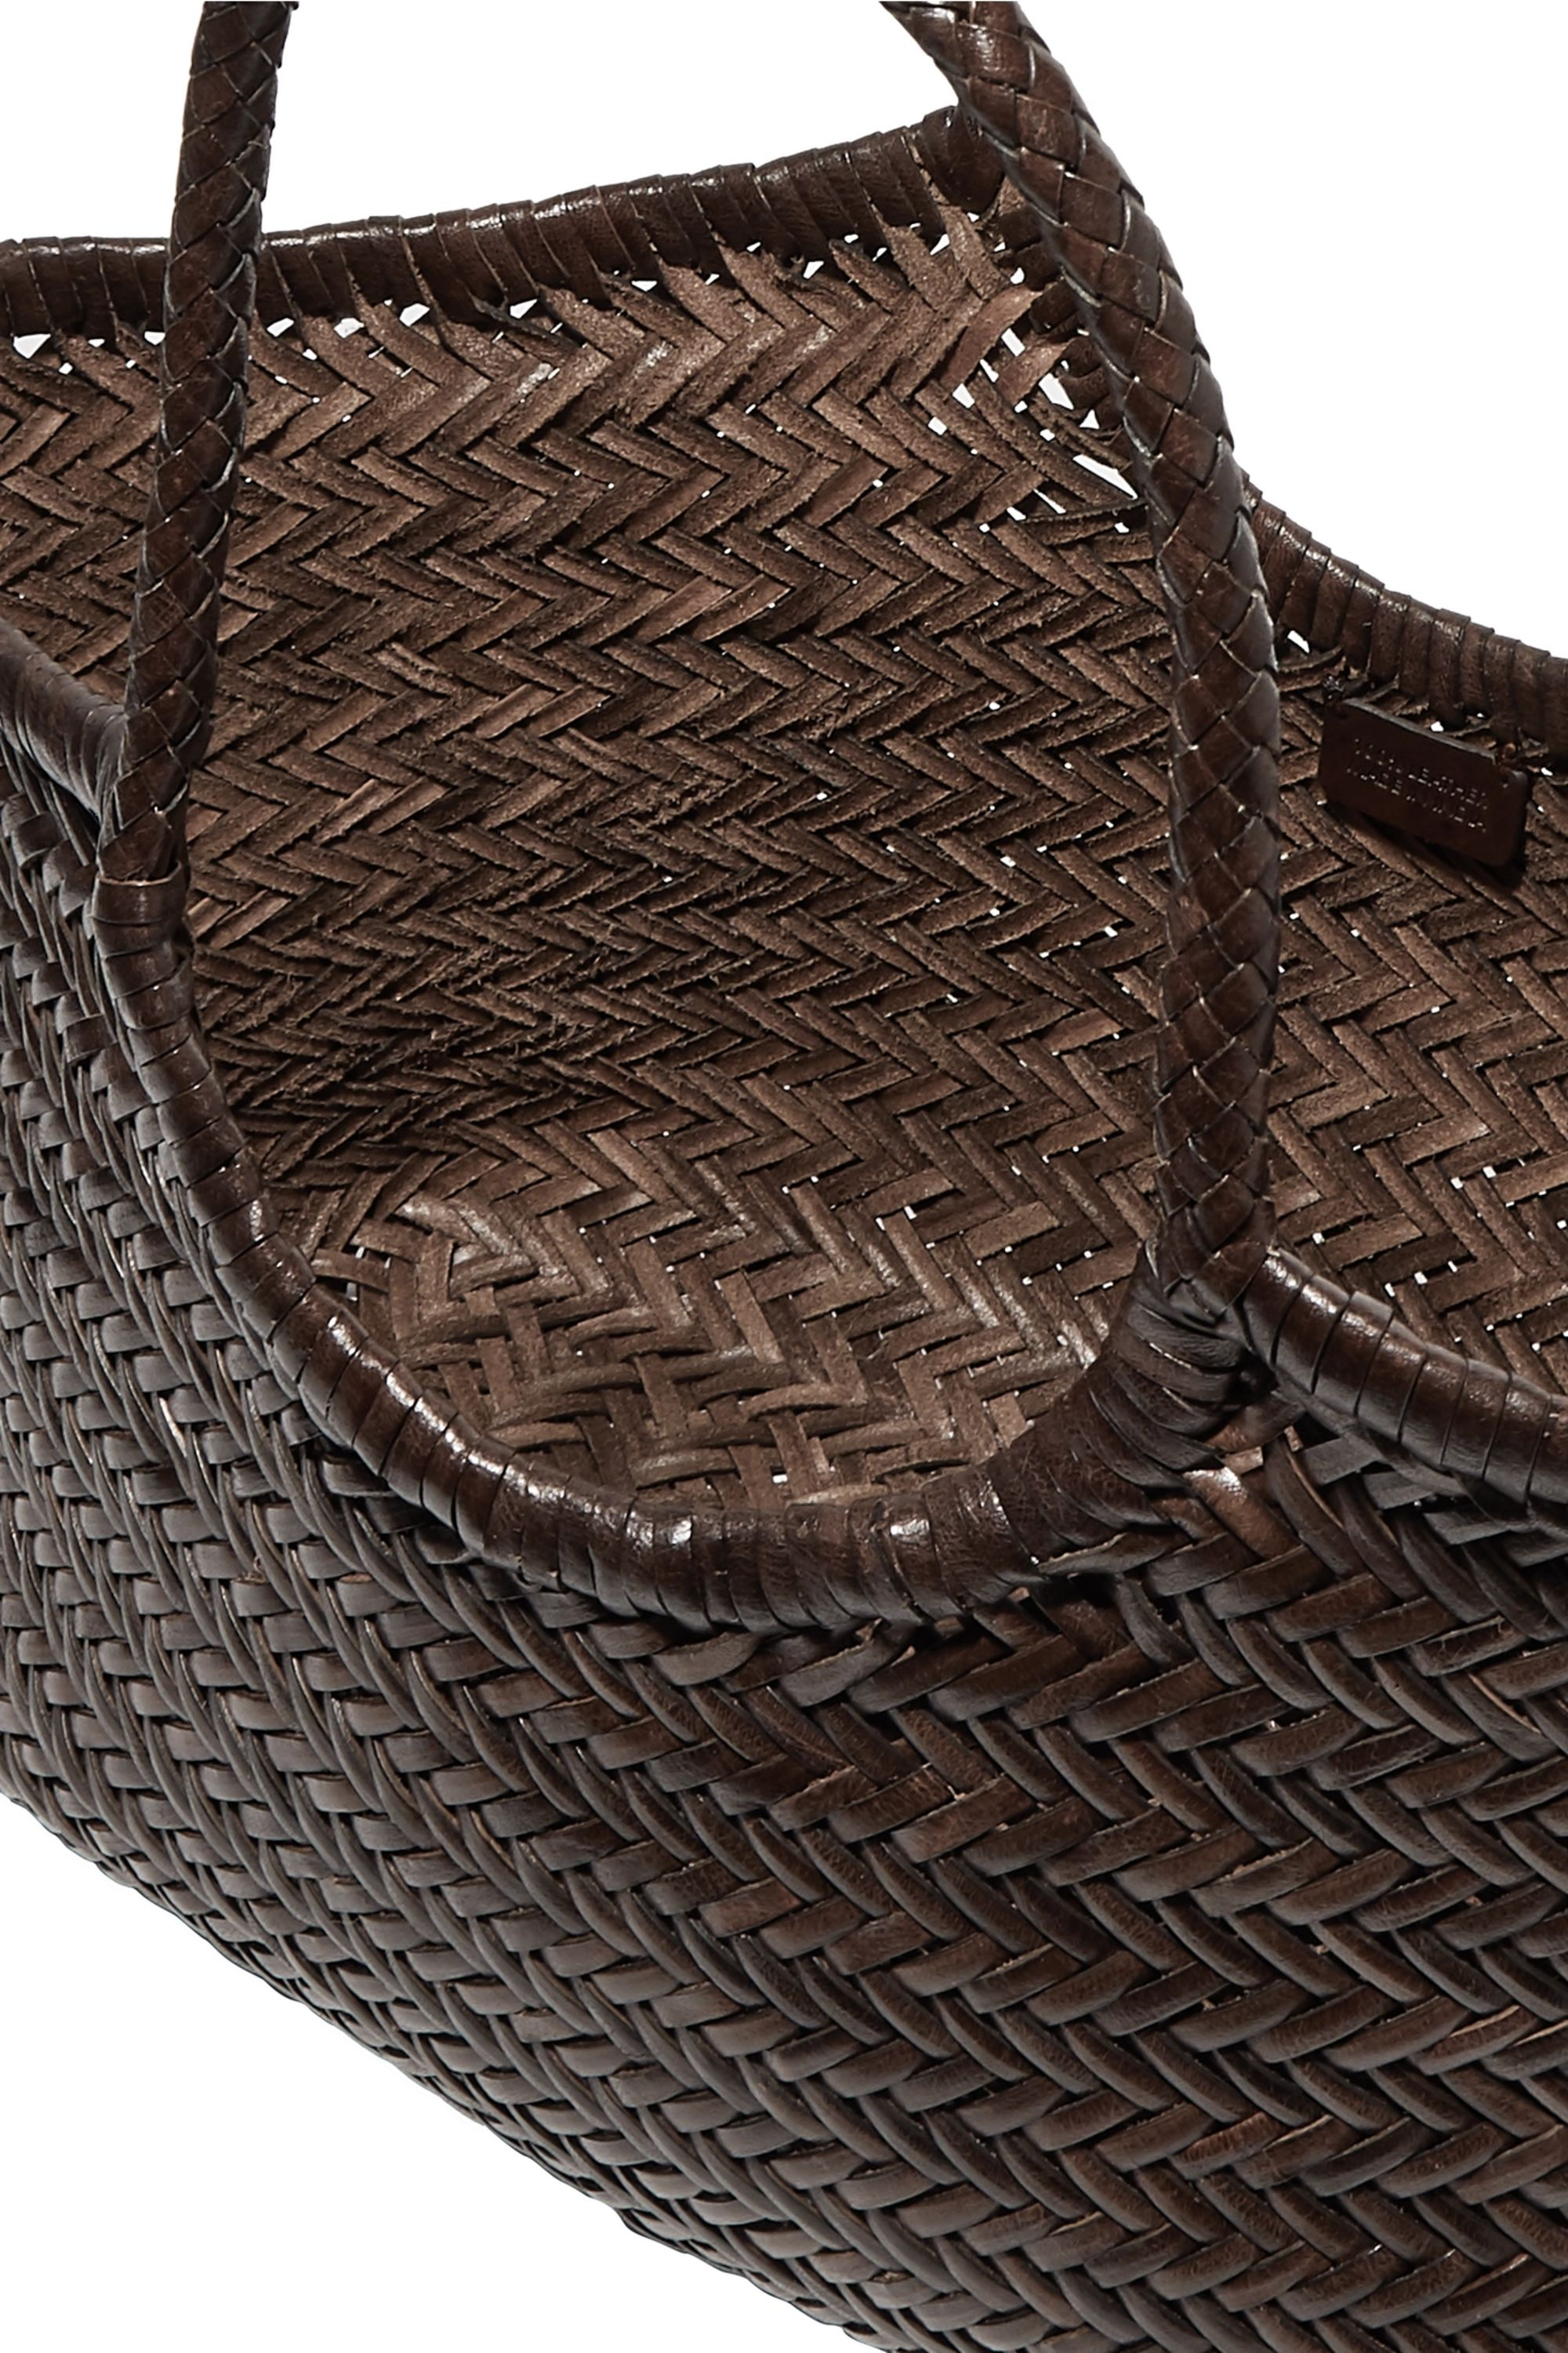 Dragon Diffusion Nantucket large woven leather tote